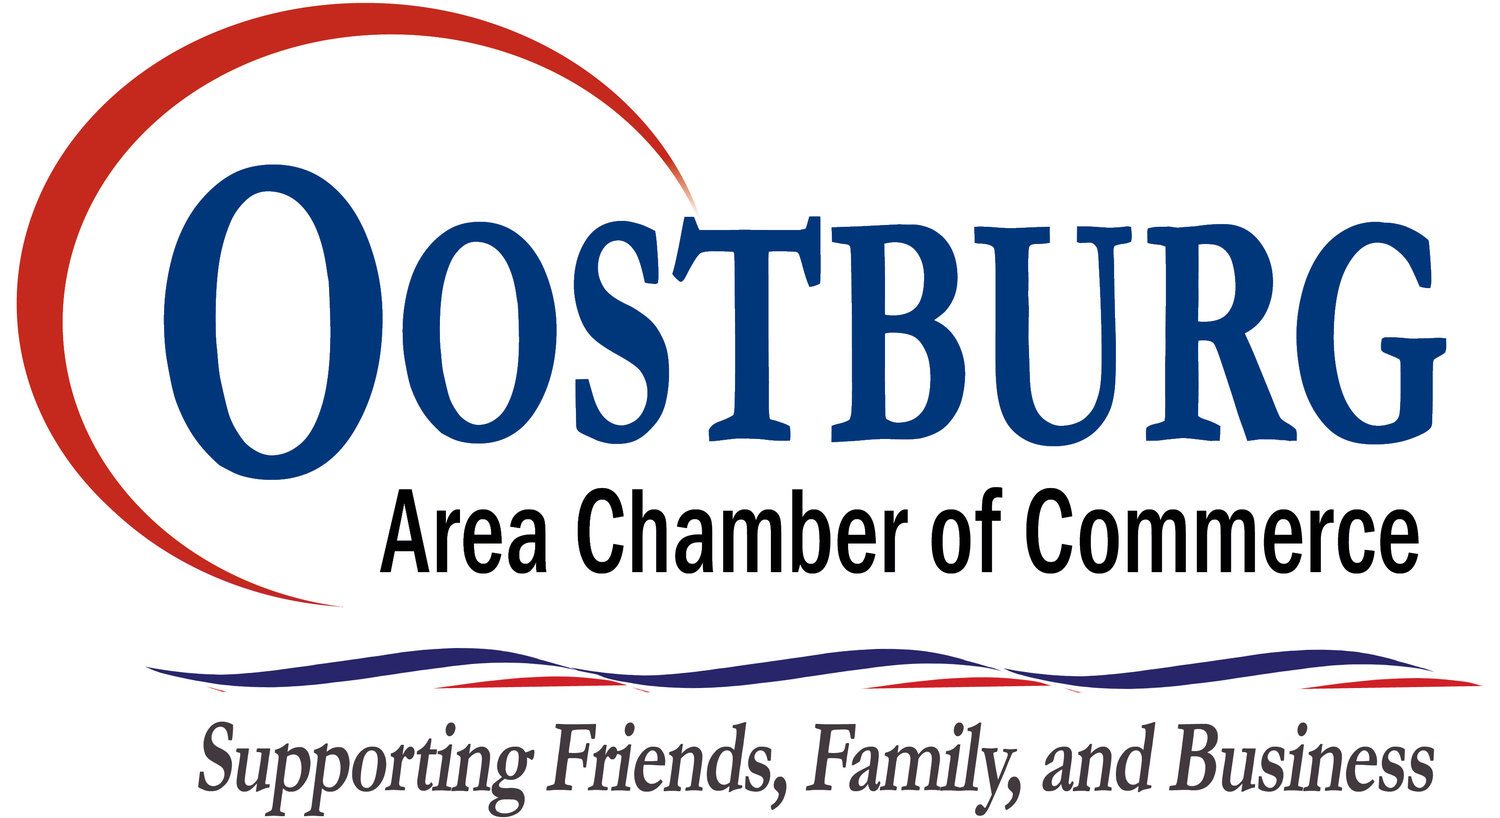 Oostburg Area Chamber of Commerce